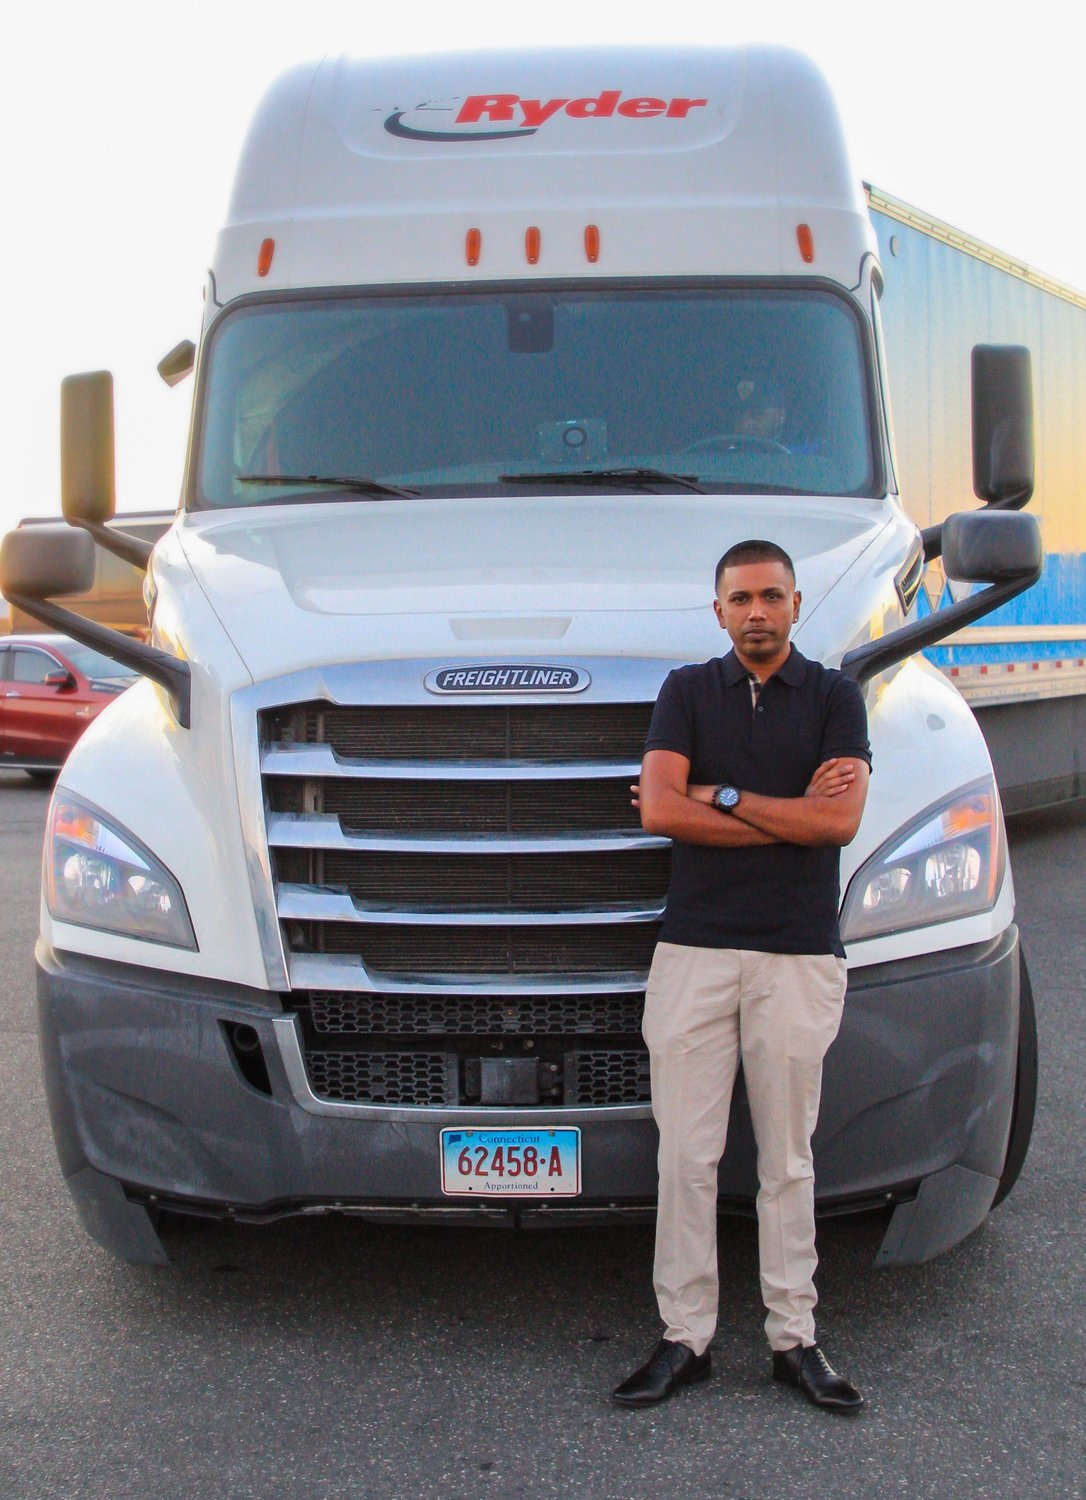 Ken Deocharran started his company with a minivan, and now has contracts with Ryder to lease trucks that deliver packages for Amazon.